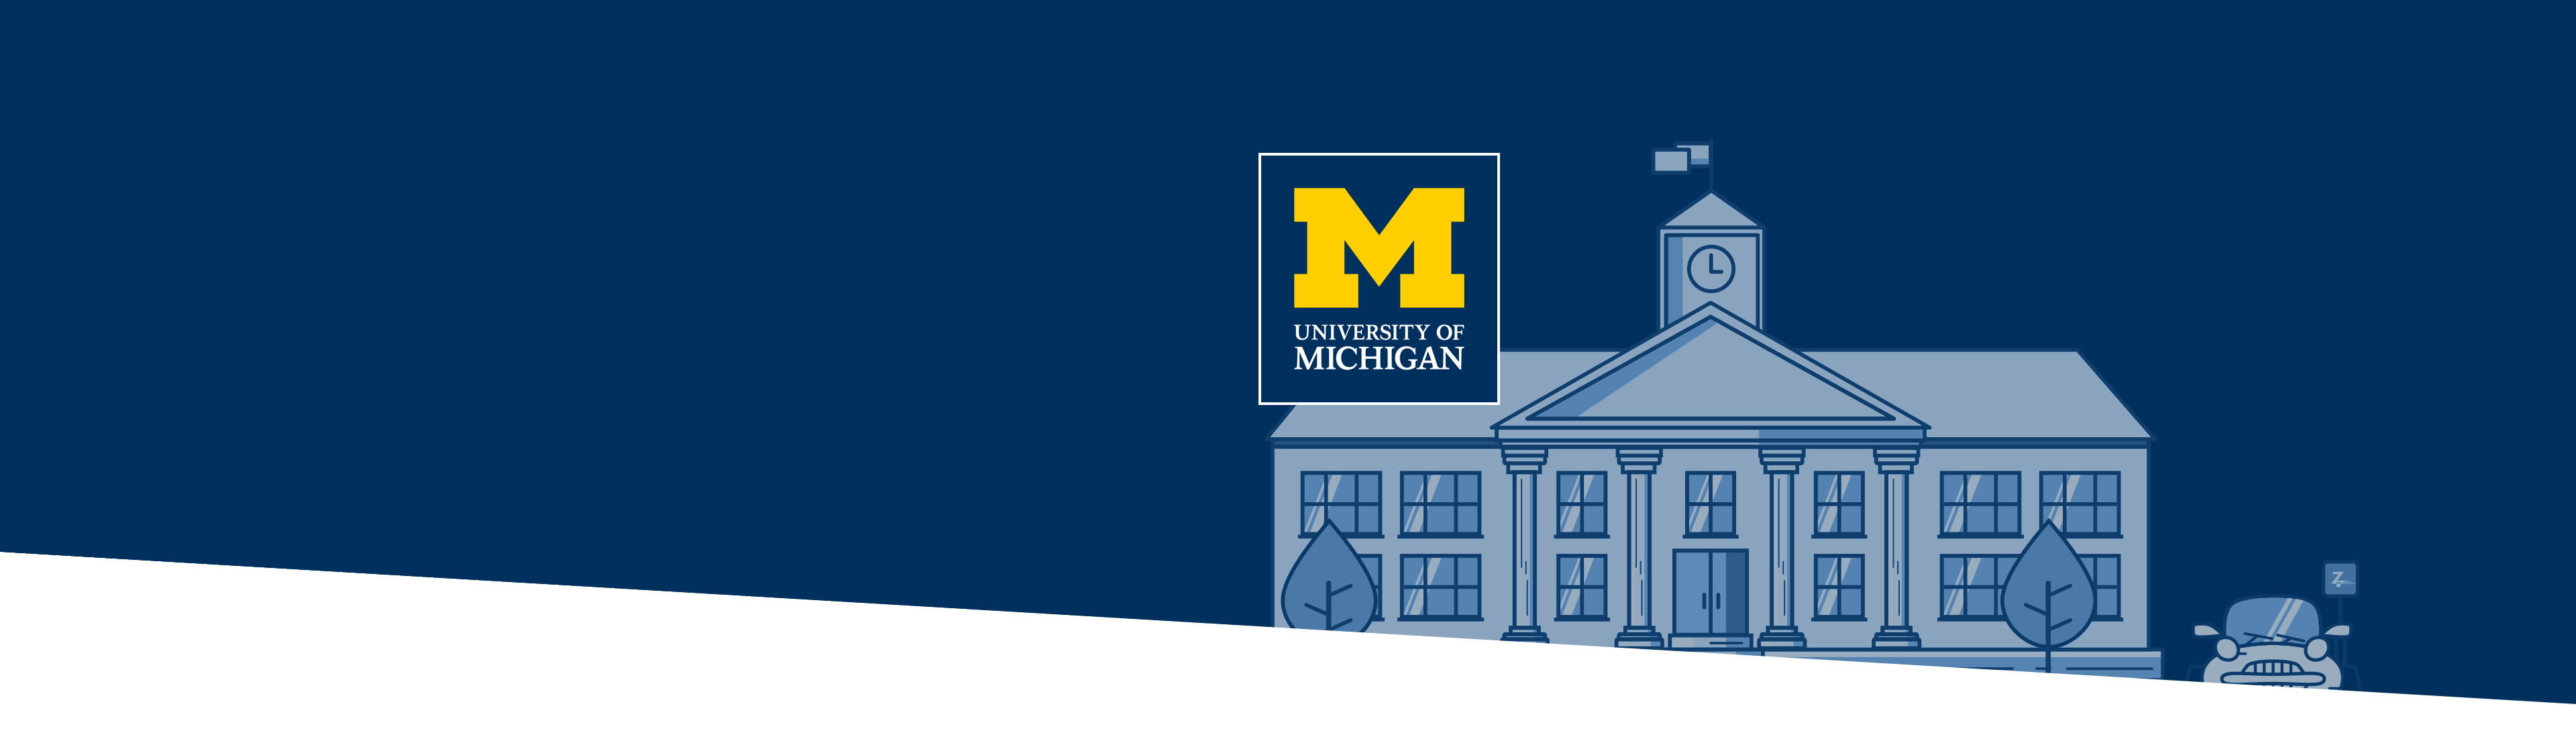 University of Michigan building and logo